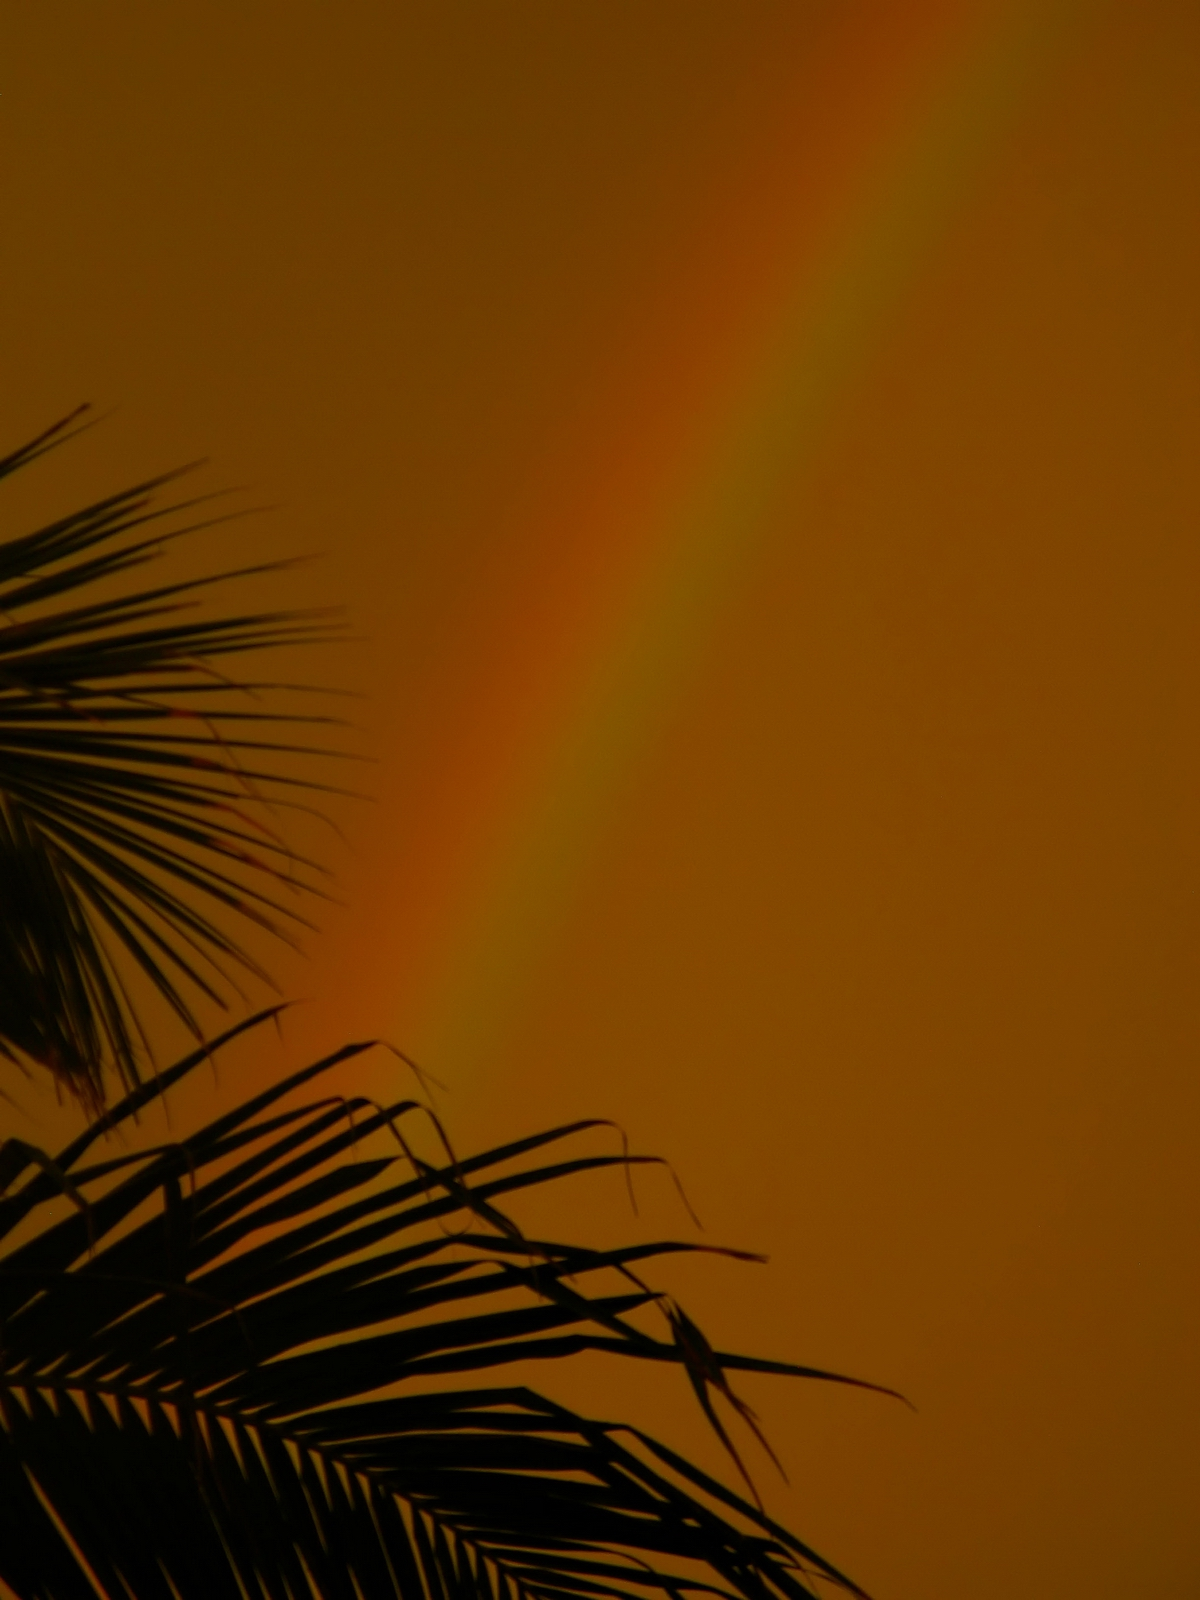 The Sunsets golden rays provided background for the rainbow.